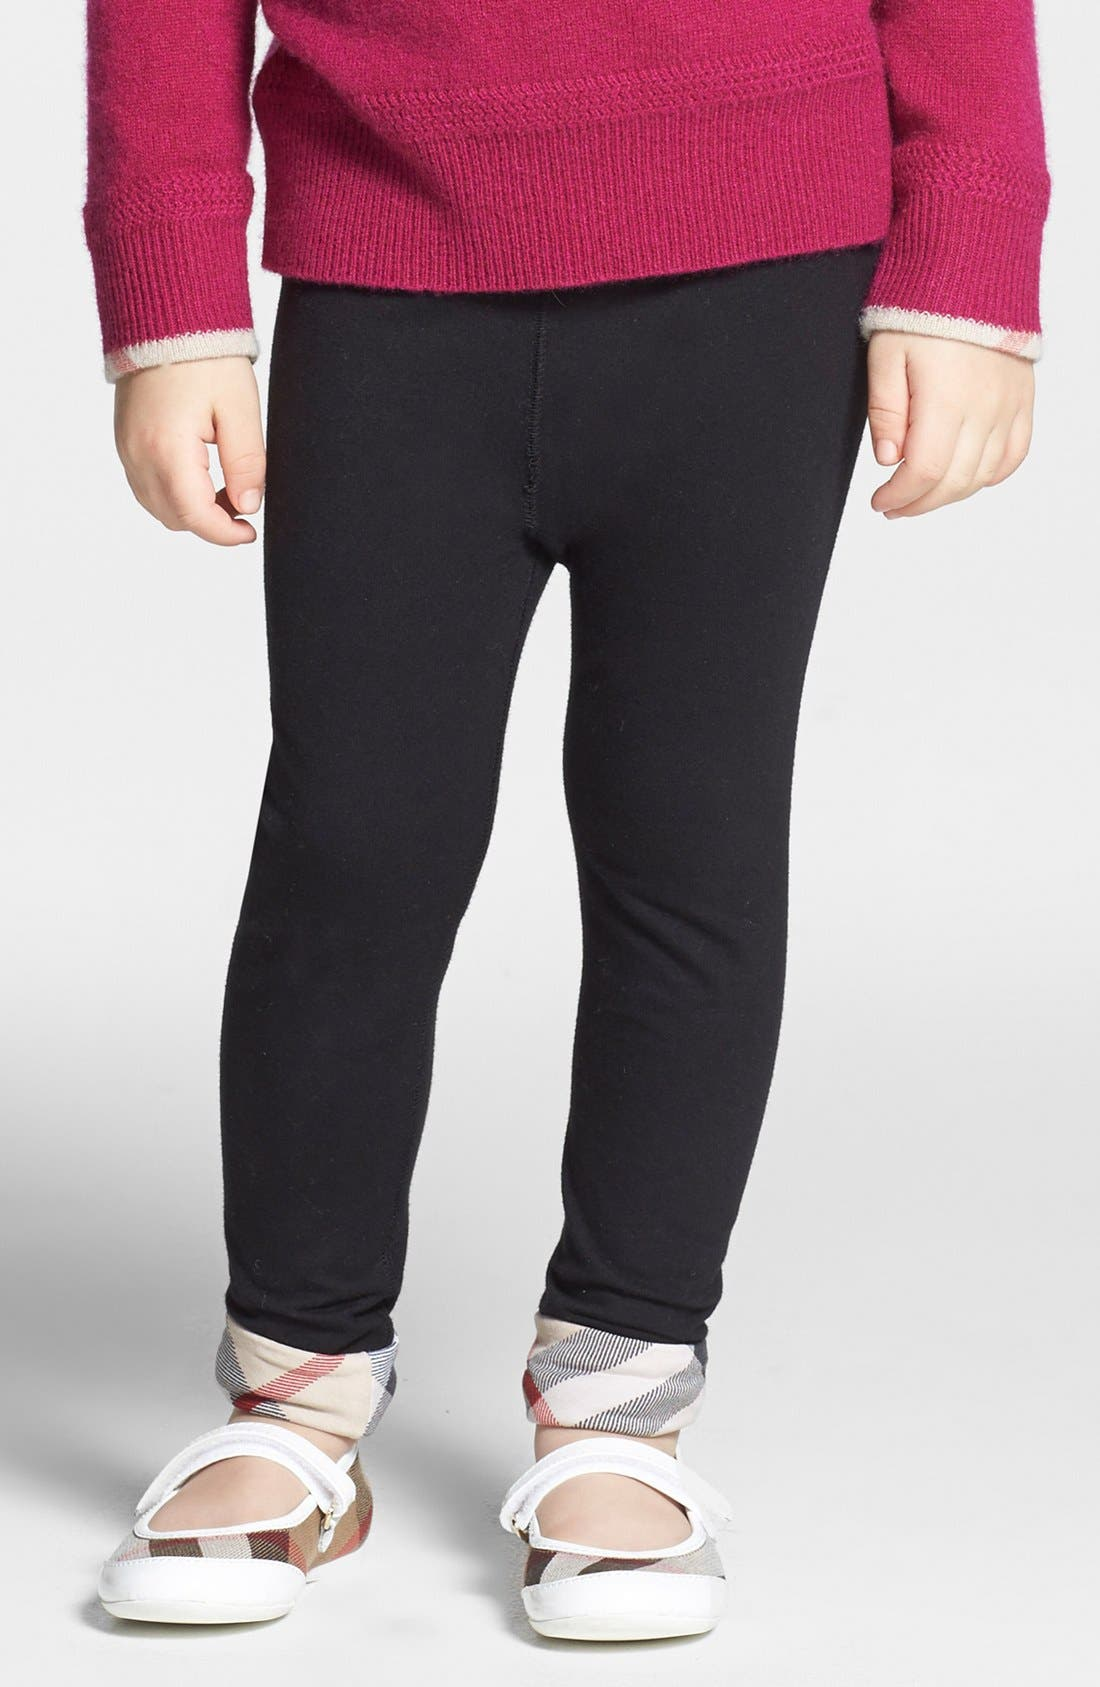 BURBERRY,                             Check Cuff Pants,                             Alternate thumbnail 3, color,                             001